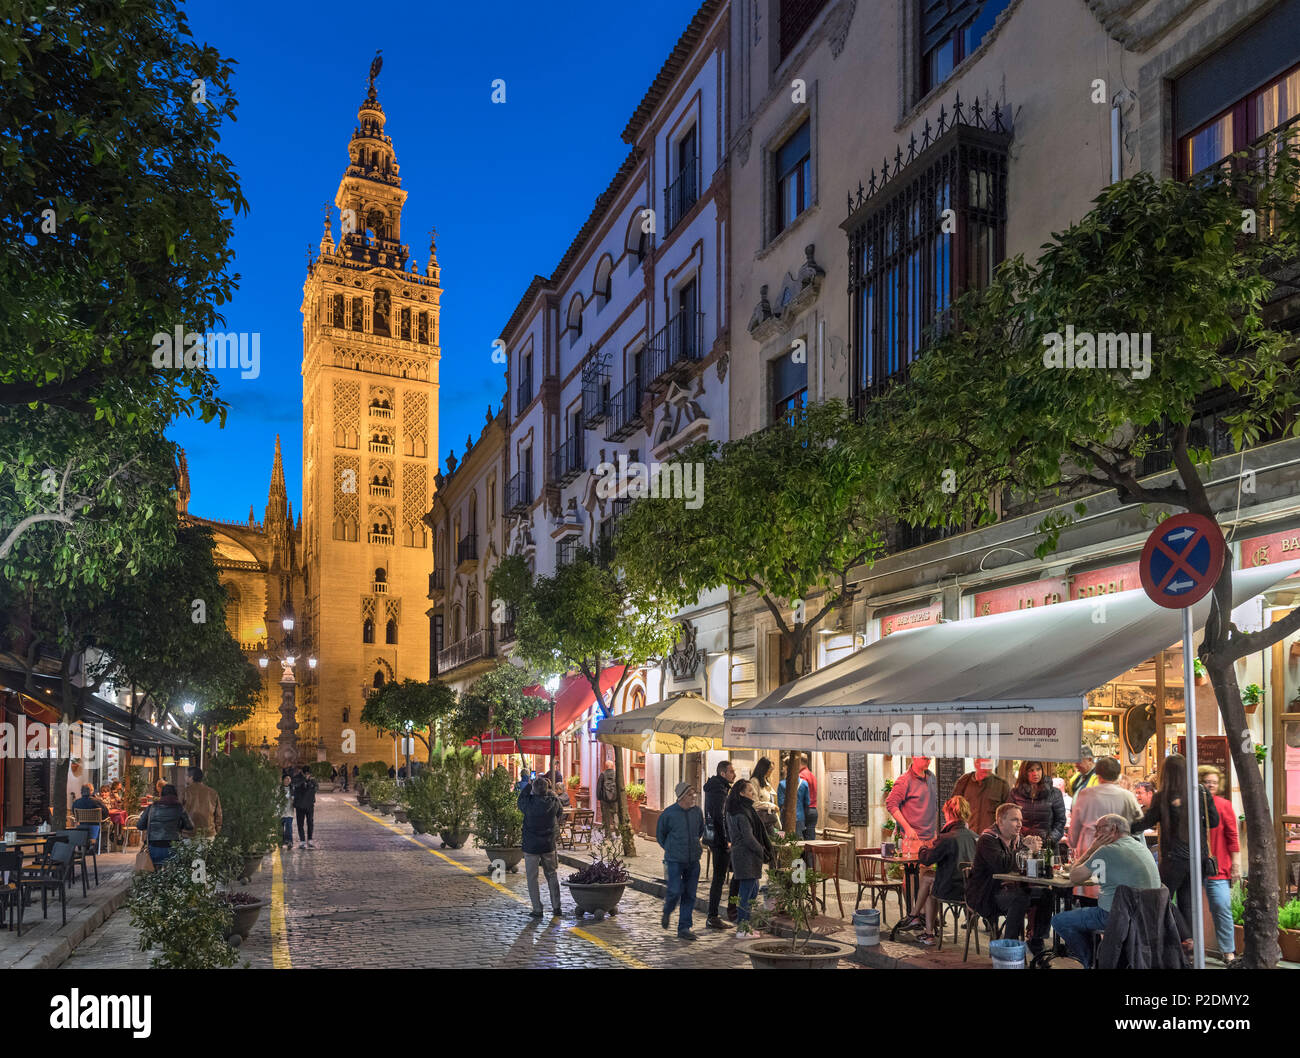 Seville, Spain. Cafes on Calle Mateos Gago at night looking towards the Giralda tower and Cathedral, Barrio Santa Cruz, Sevilla, Andalucia, Spain - Stock Image